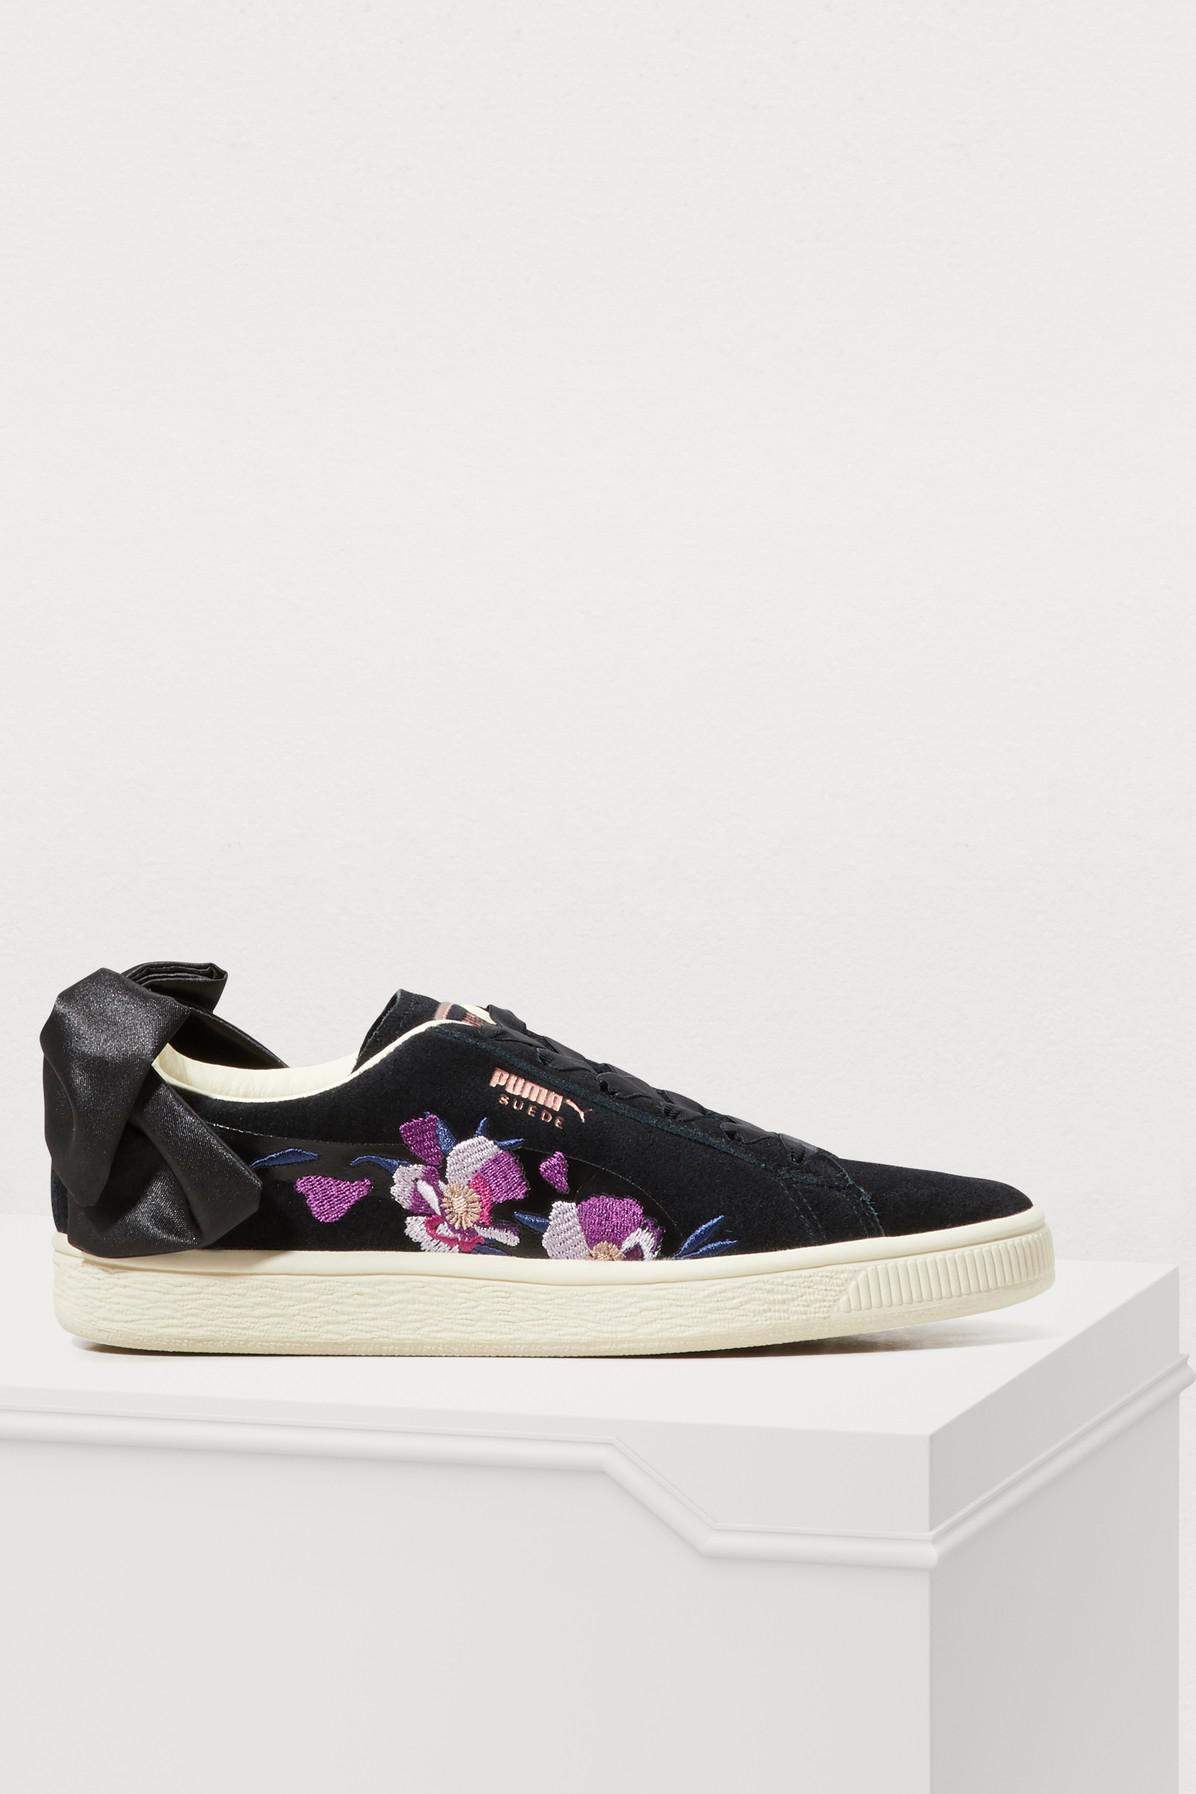 PUMA - Black Bow Flowery Sneakers - Lyst. View fullscreen 4718fe95e